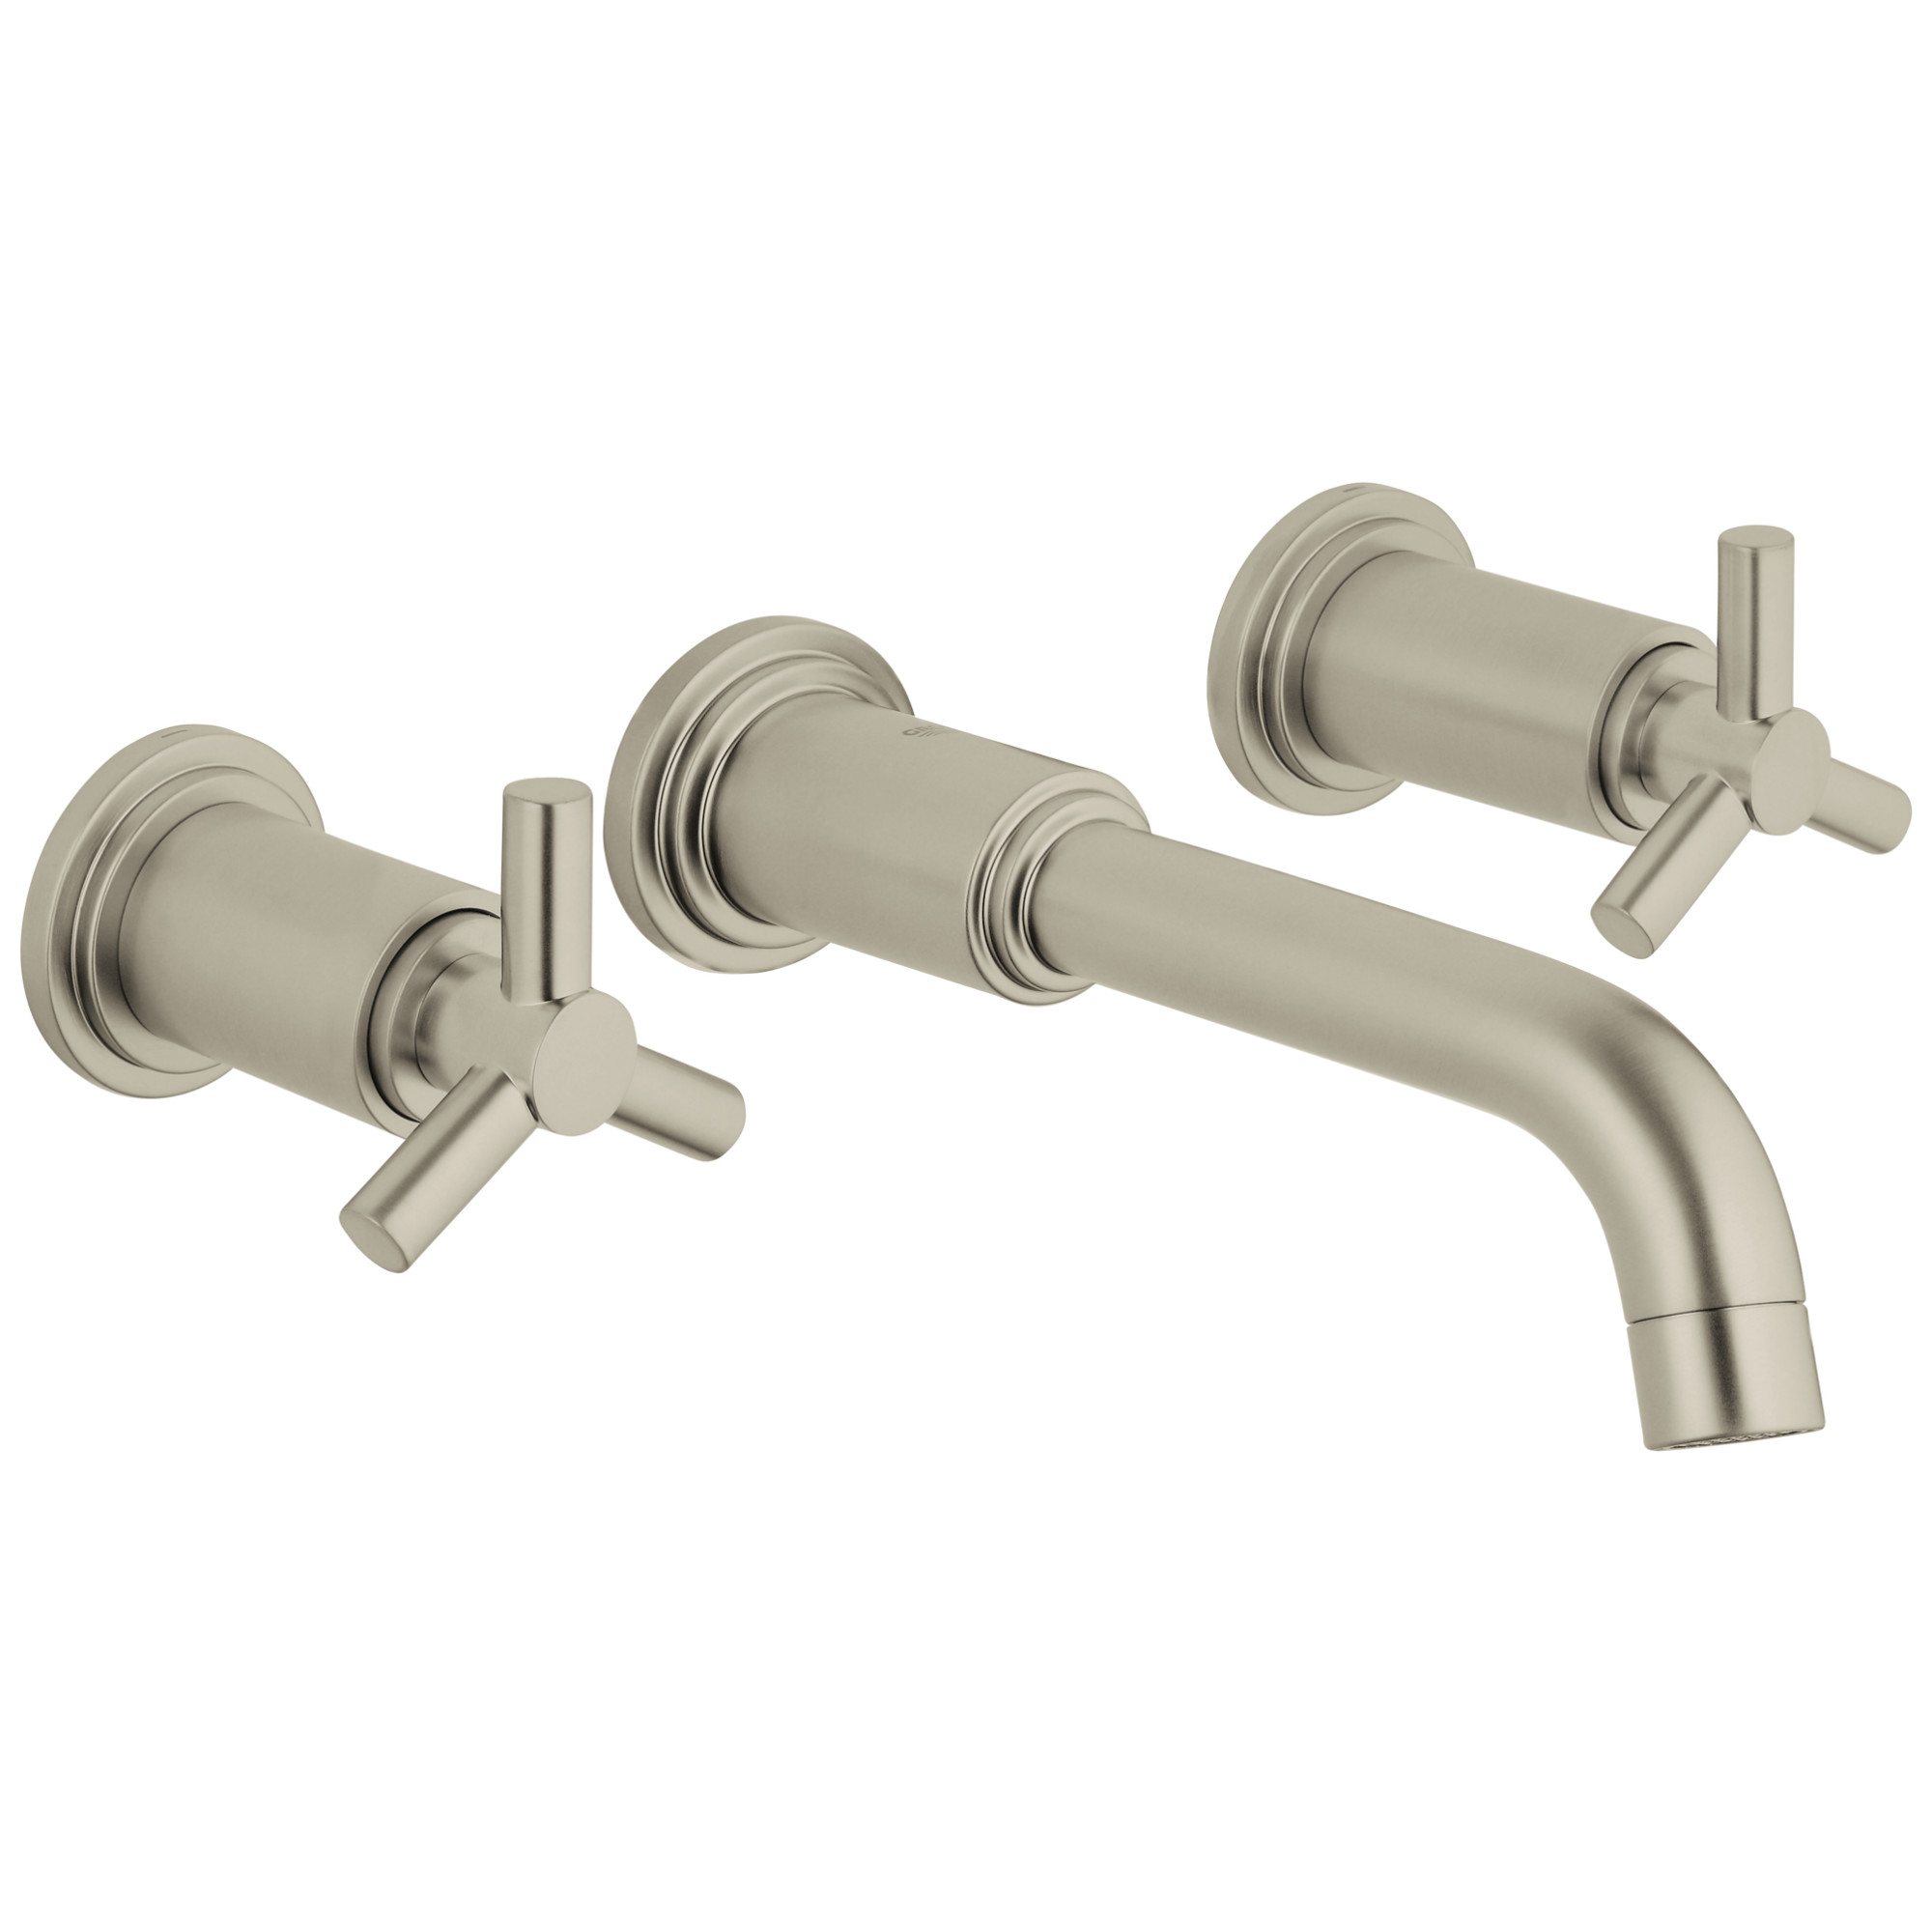 Brushed Nickel Bathroom Faucets Clearance Grohe Clearance Faucets Showers Grohe Shop